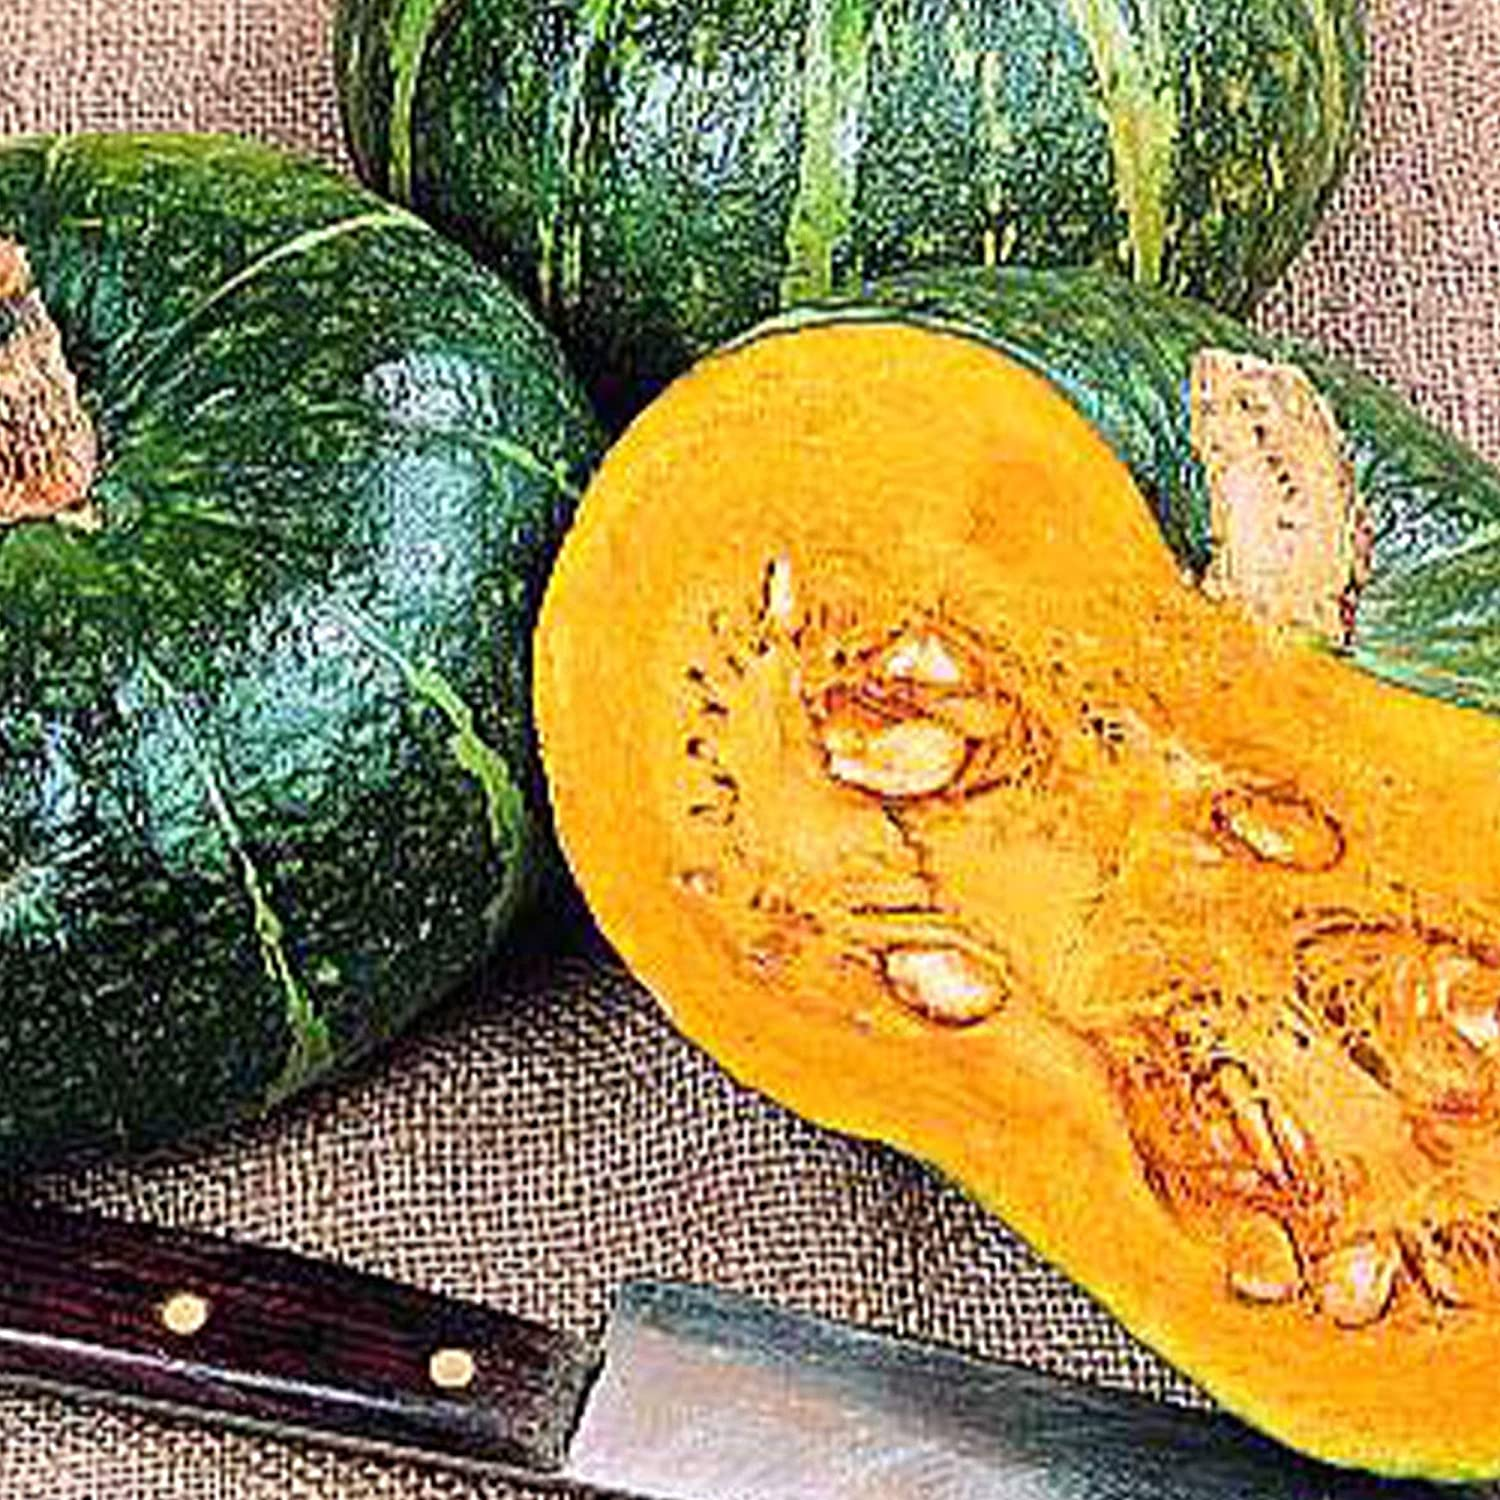 Organic Burgess Buttercup Bush Squash Seed - 4 g ~20 Seeds - Non-GMO, Open Pollinated, Heirloom, Vegetable Gardening Seeds - Winter Squash